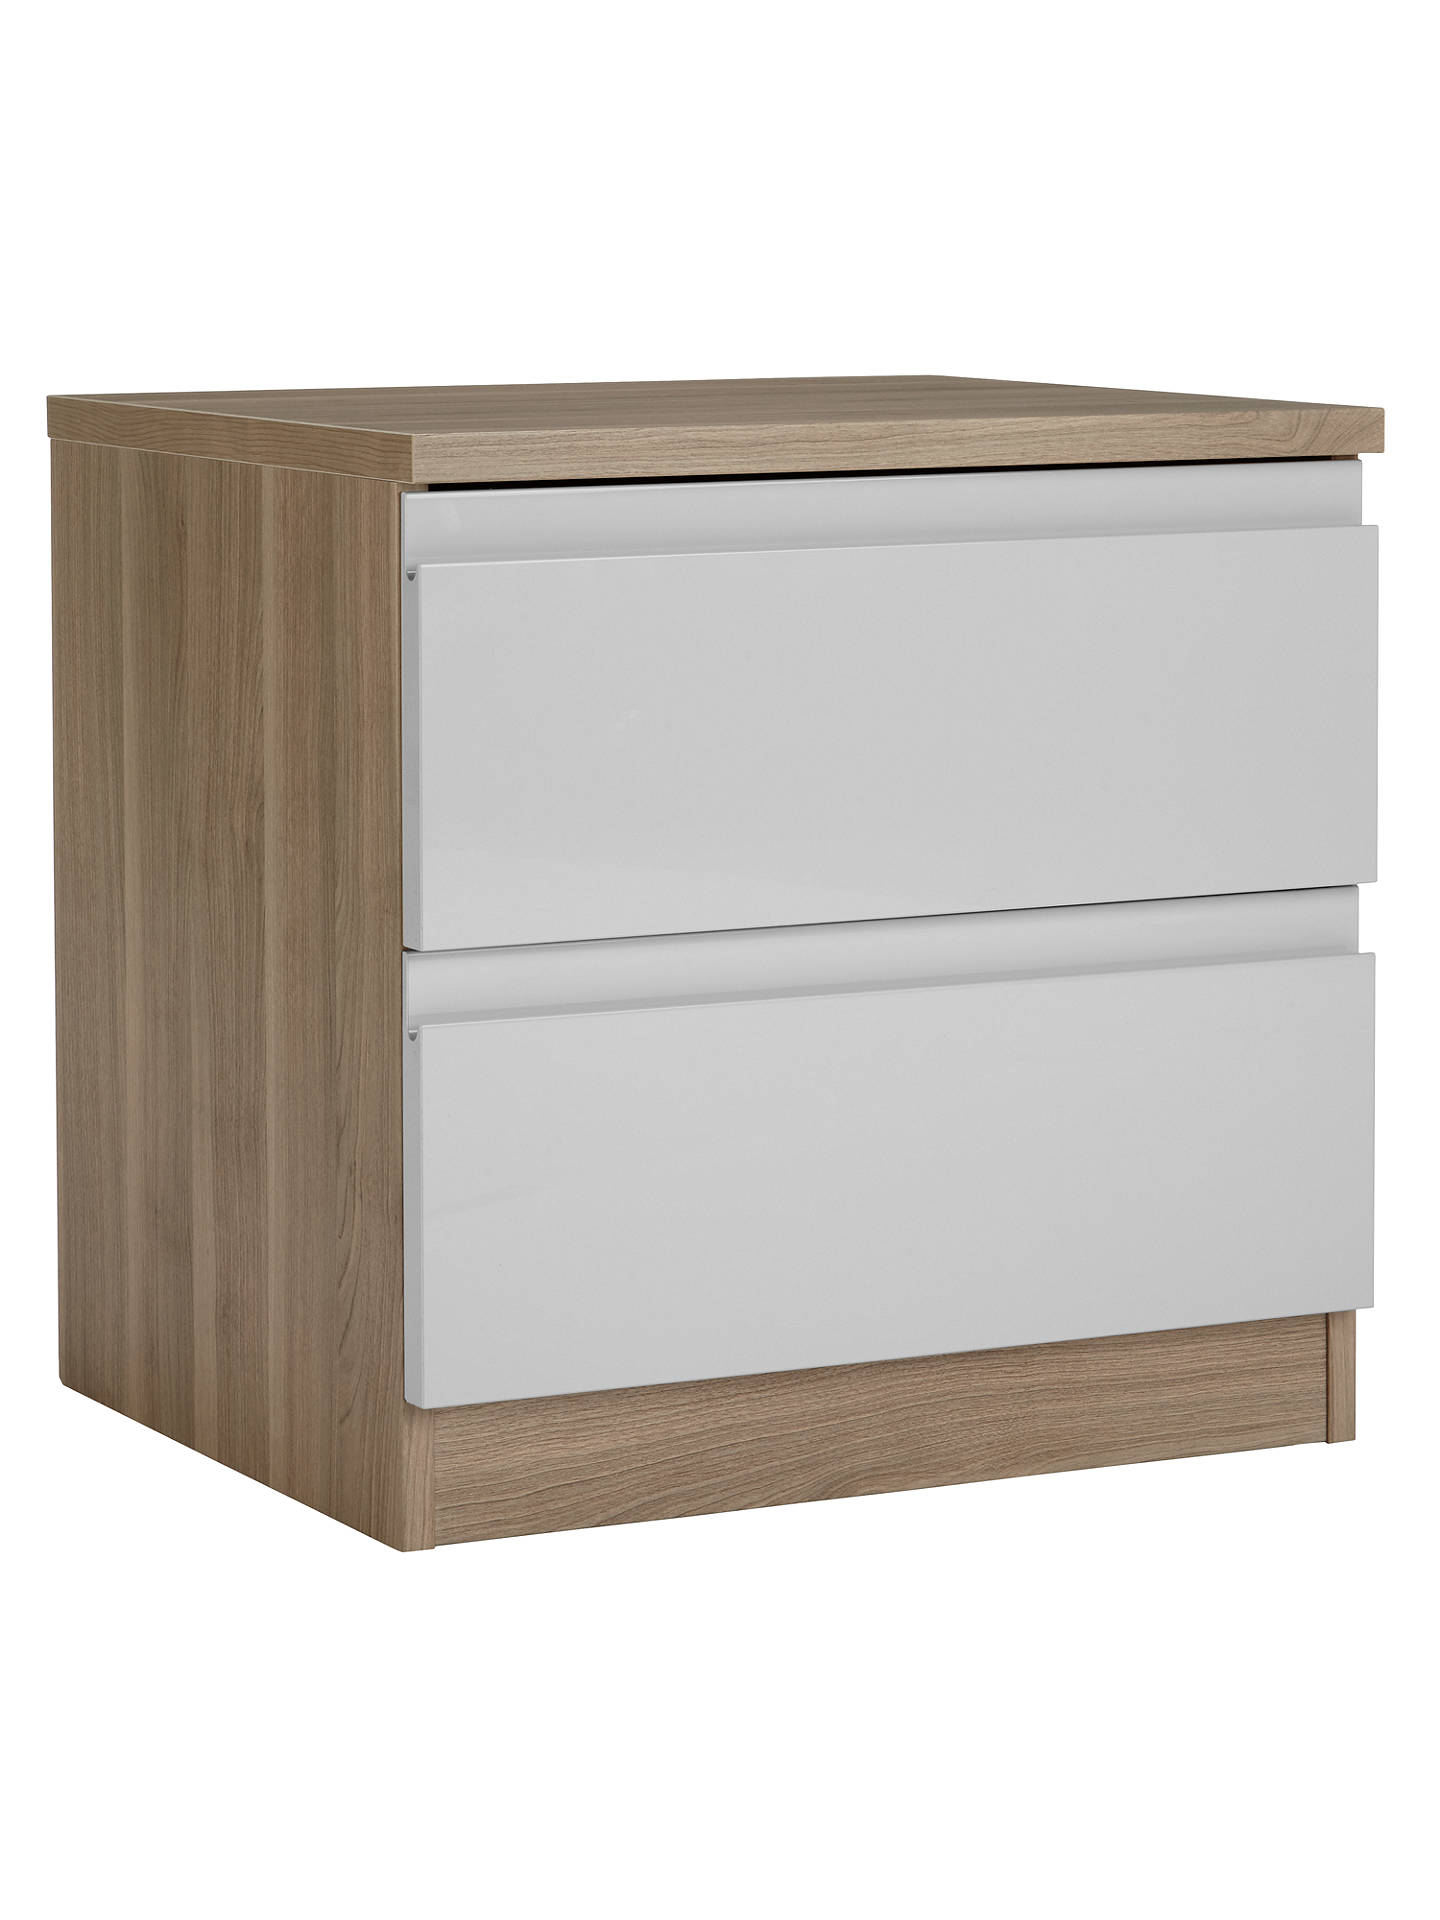 BuyHouse by John Lewis Mix it 2 Drawer Bedside Chest, House Smoke/Grey Ash Online at johnlewis.com